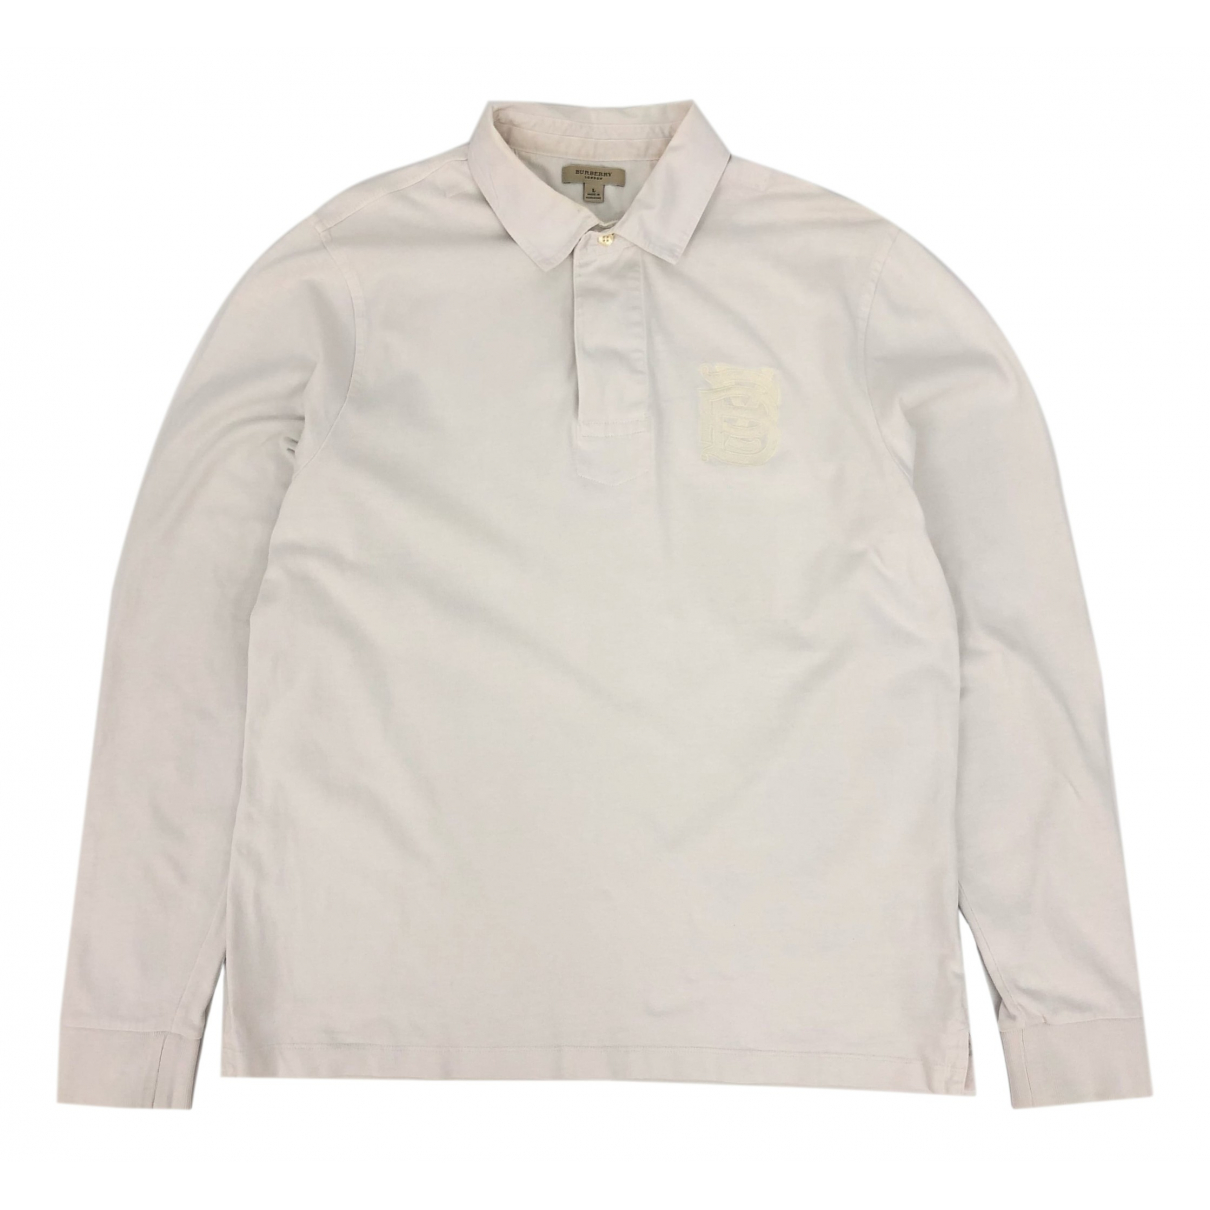 Burberry \N Poloshirts in  Weiss Baumwolle